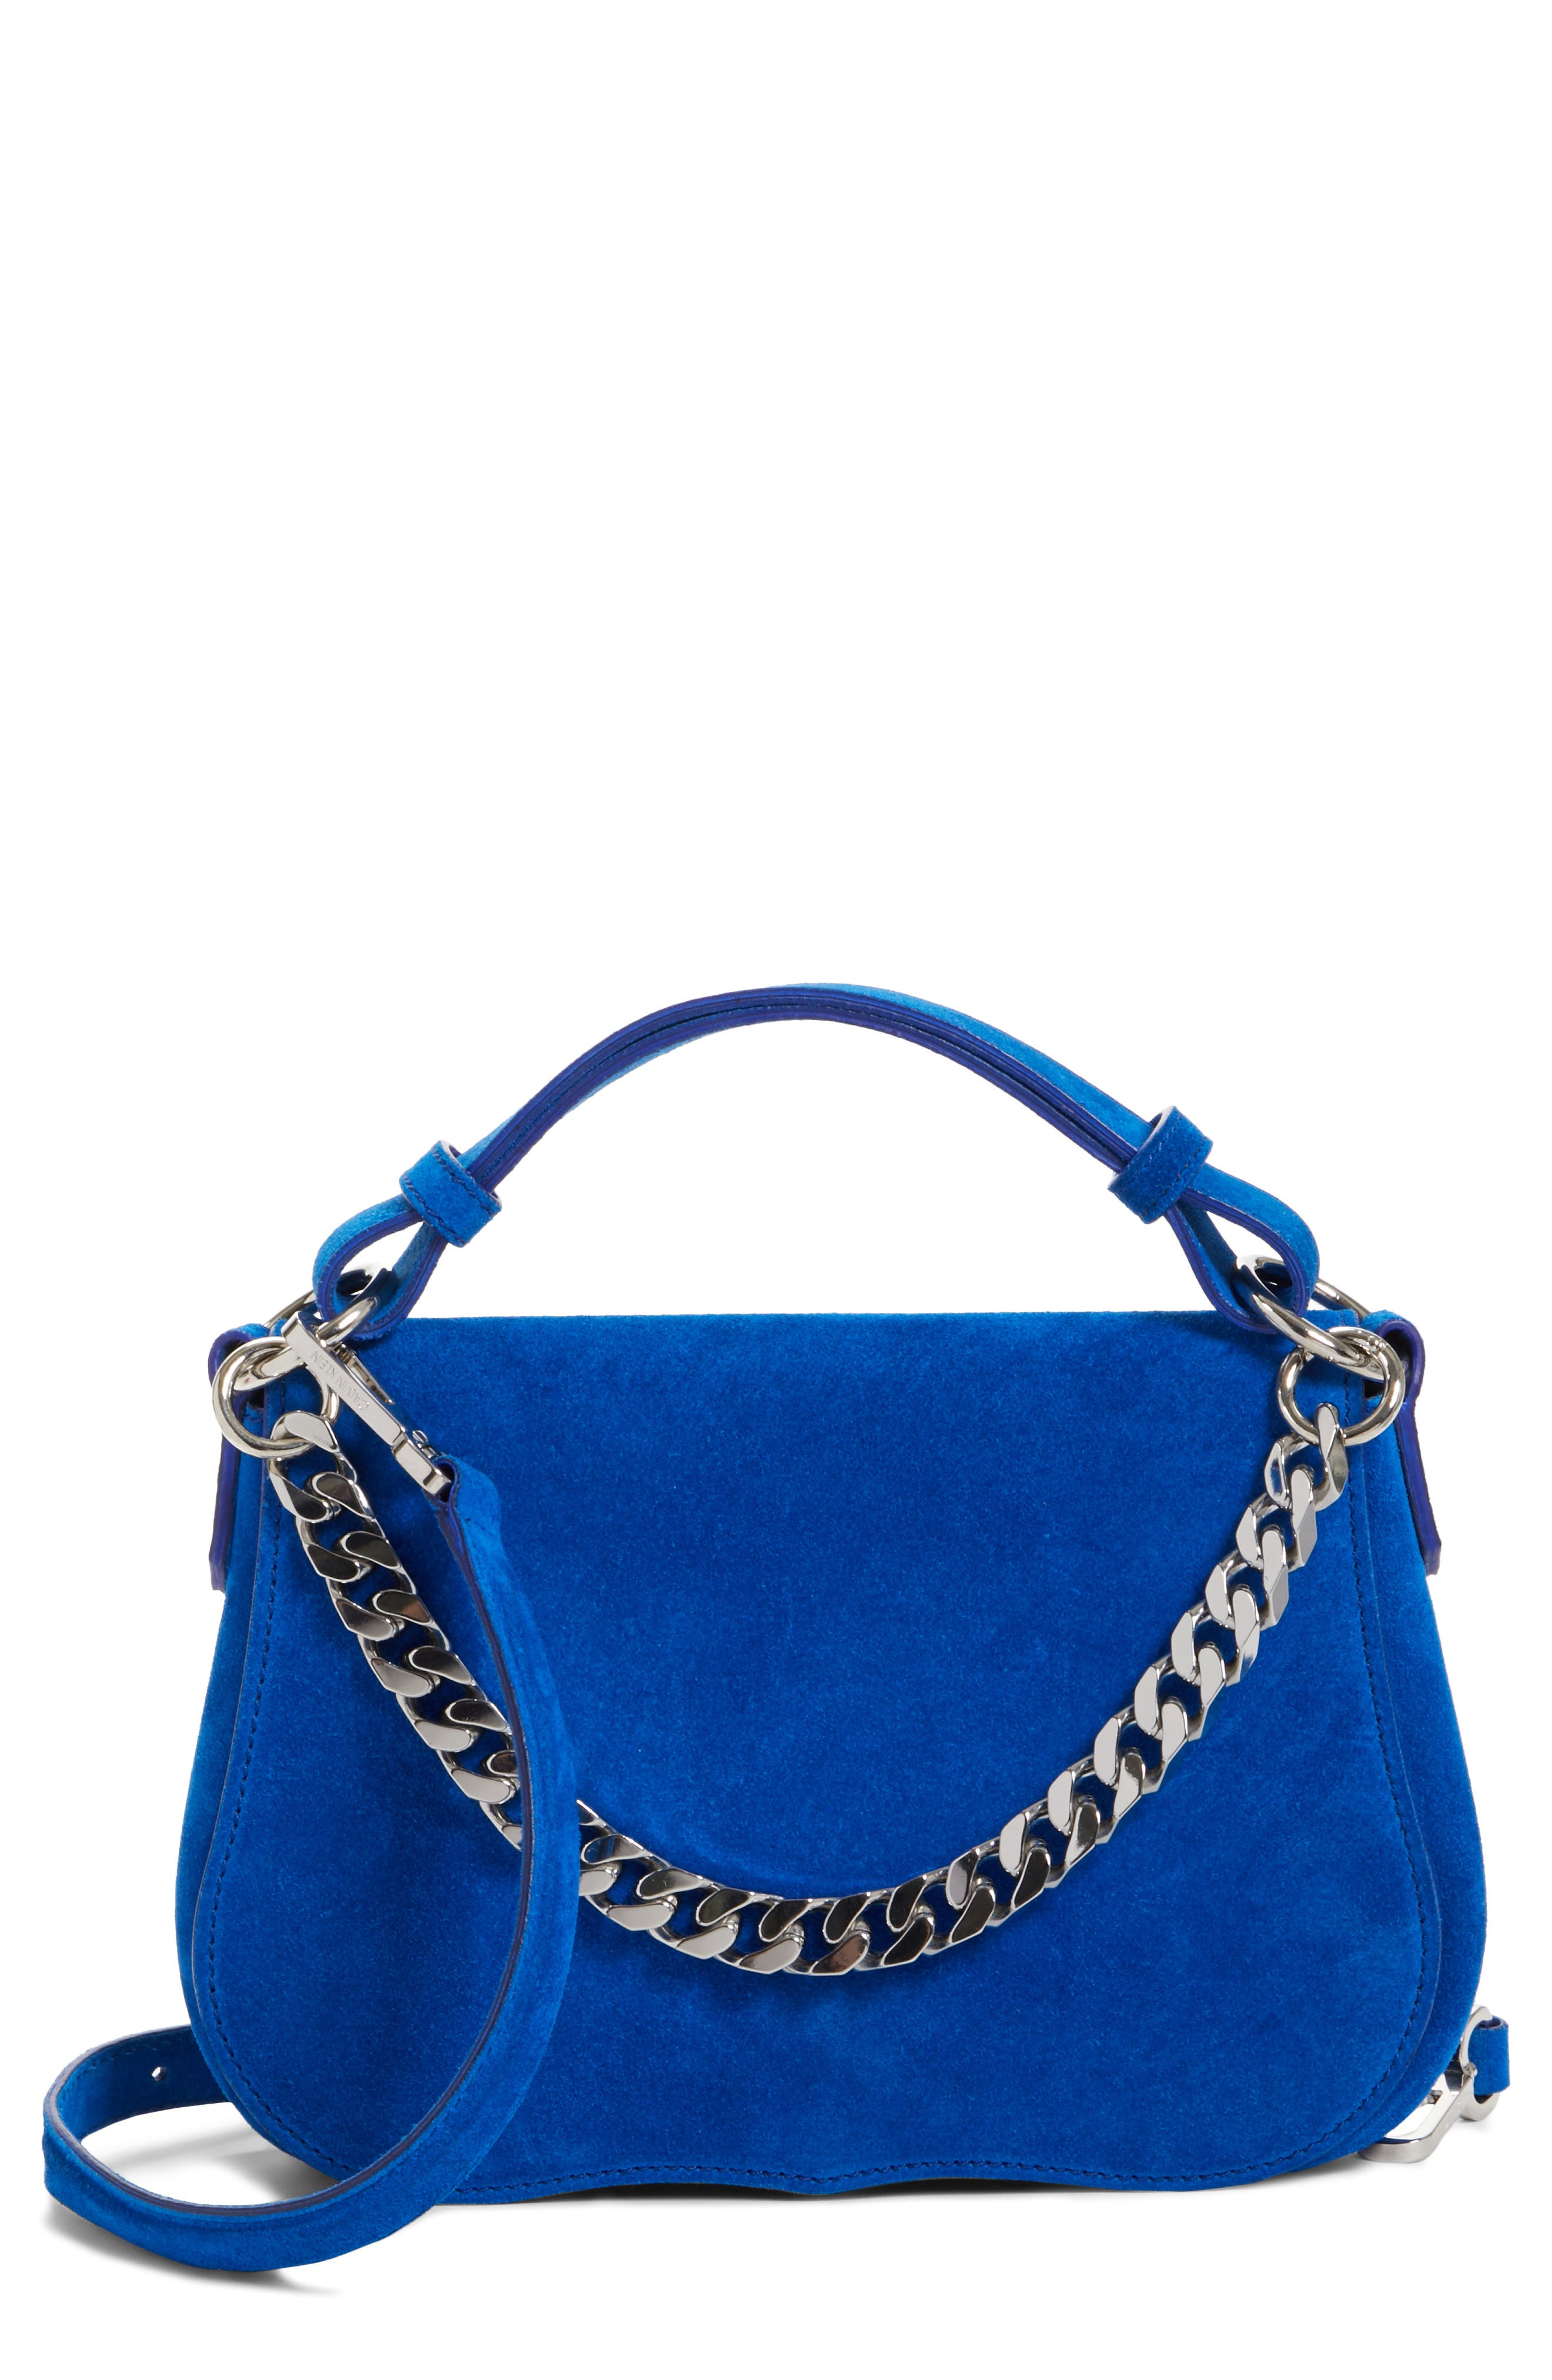 Small Suede Shoulder Bag,                             Main thumbnail 1, color,